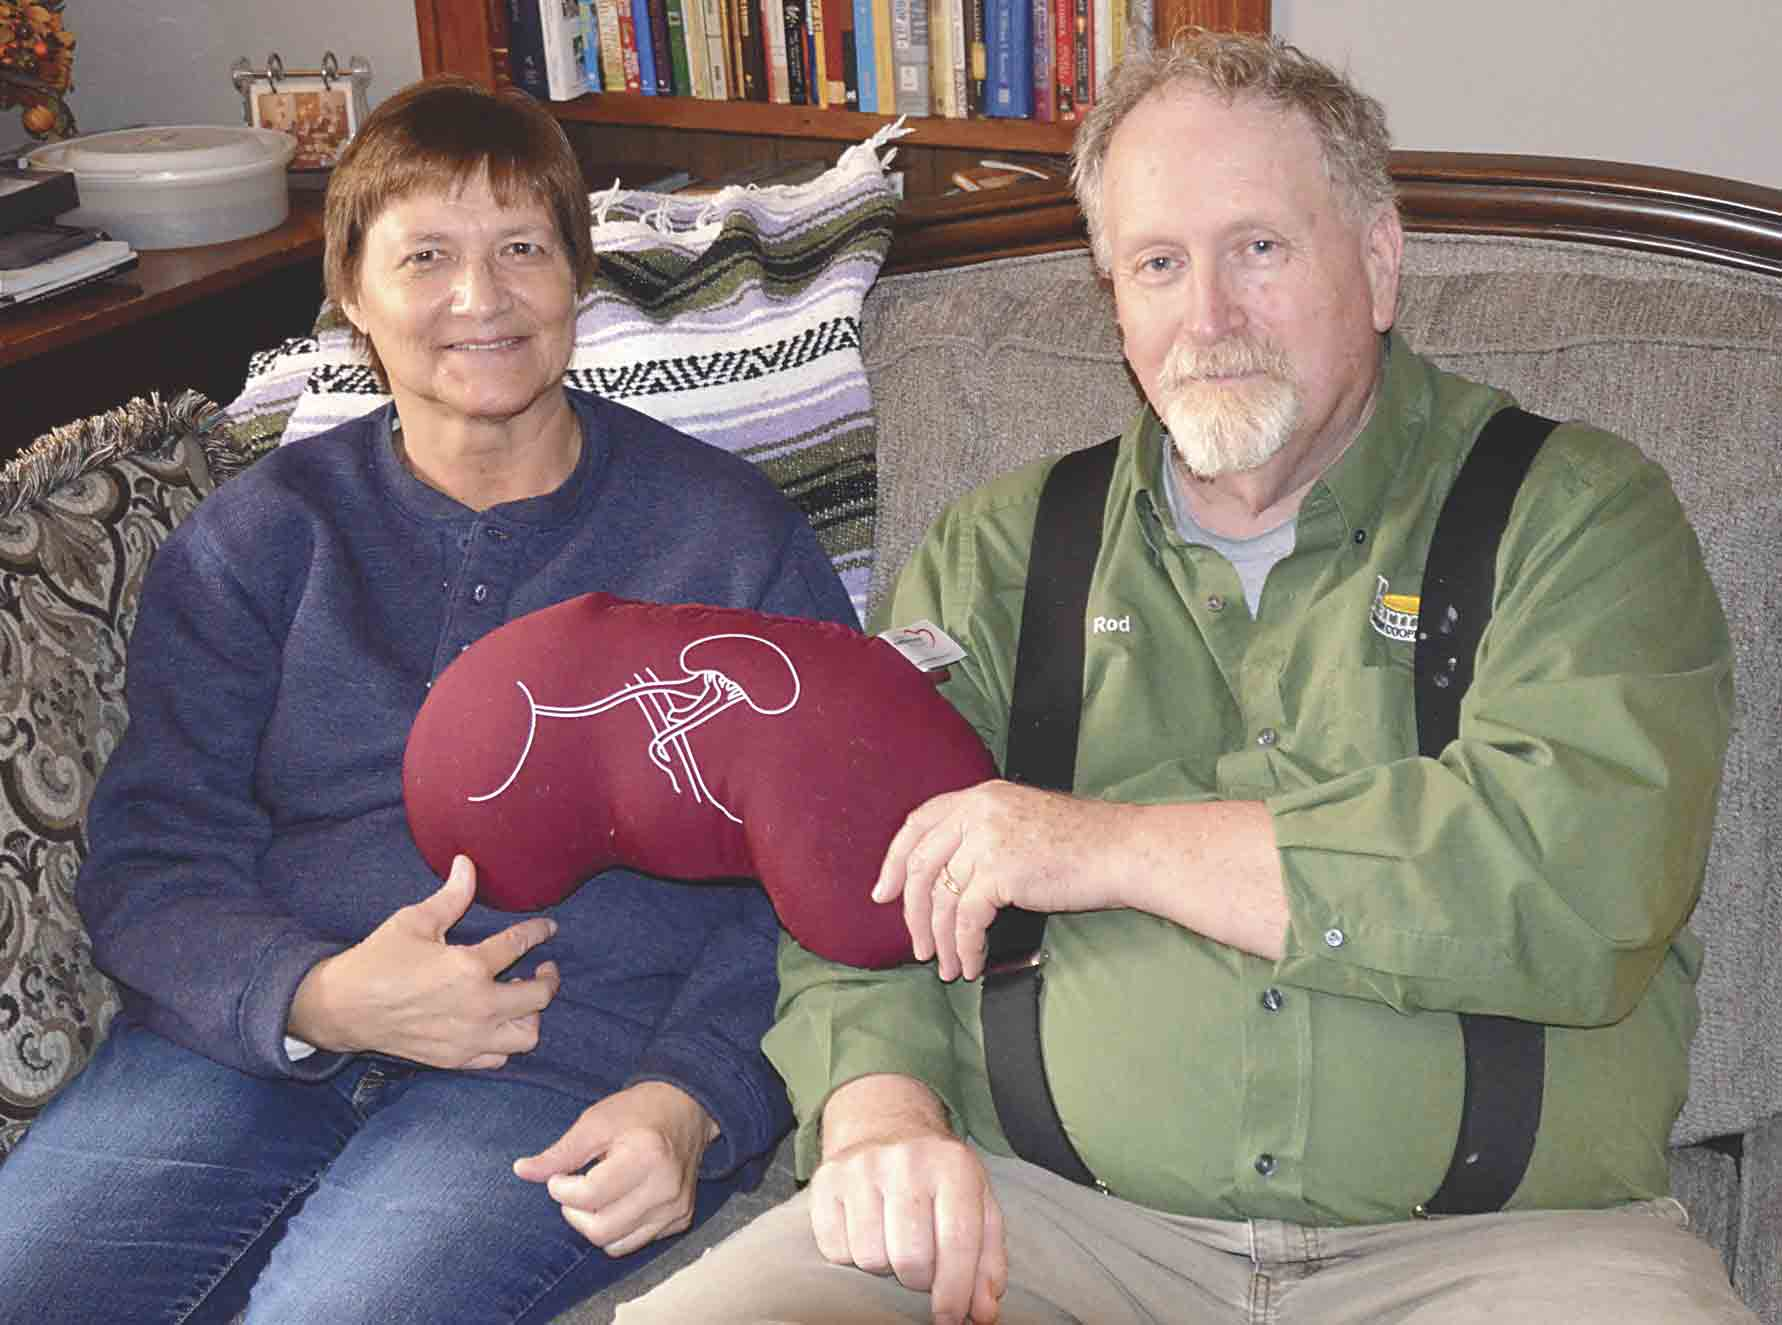 This Thanksgiving, Diane and Rodney Wagner are thankful for Diane's new kidney she received on Sept. 9. Since 2014, Diane had been on peritoneal dialysis, and this new kidney will allow her to return to a more normal life. The Wagners are especially grateful for all the support they...